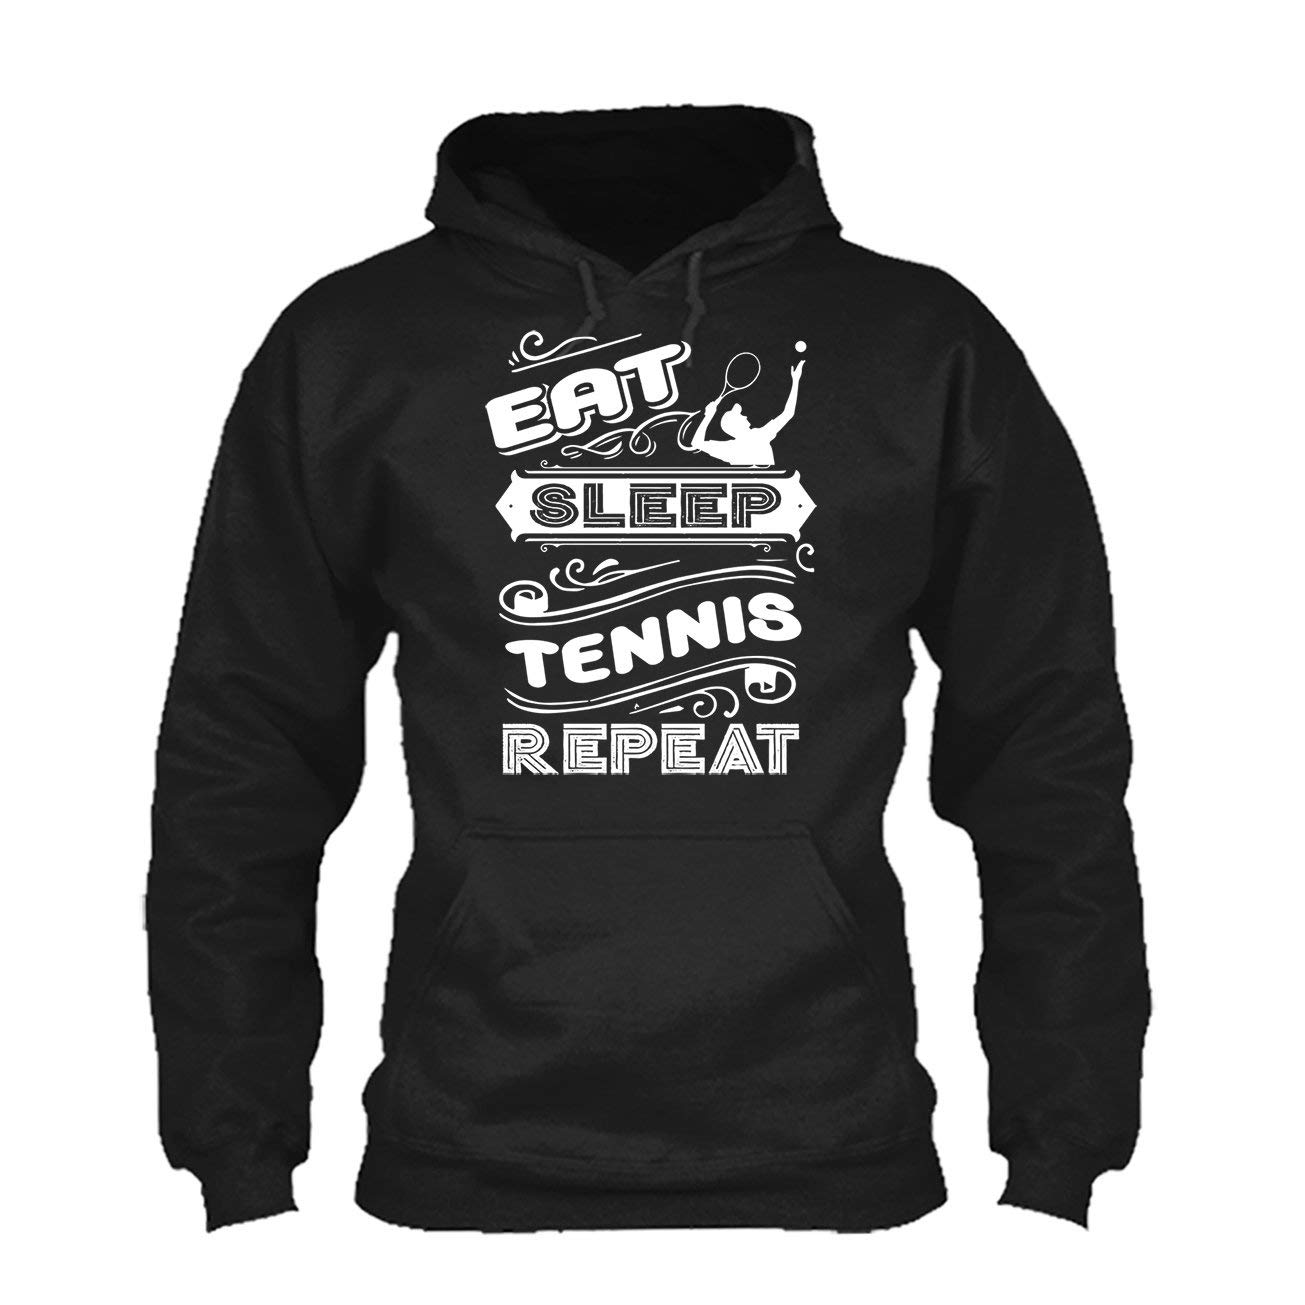 LightRed Eat Sleep Tennis Repeat Tee Shirt Cool Sweatshirt Hoodie